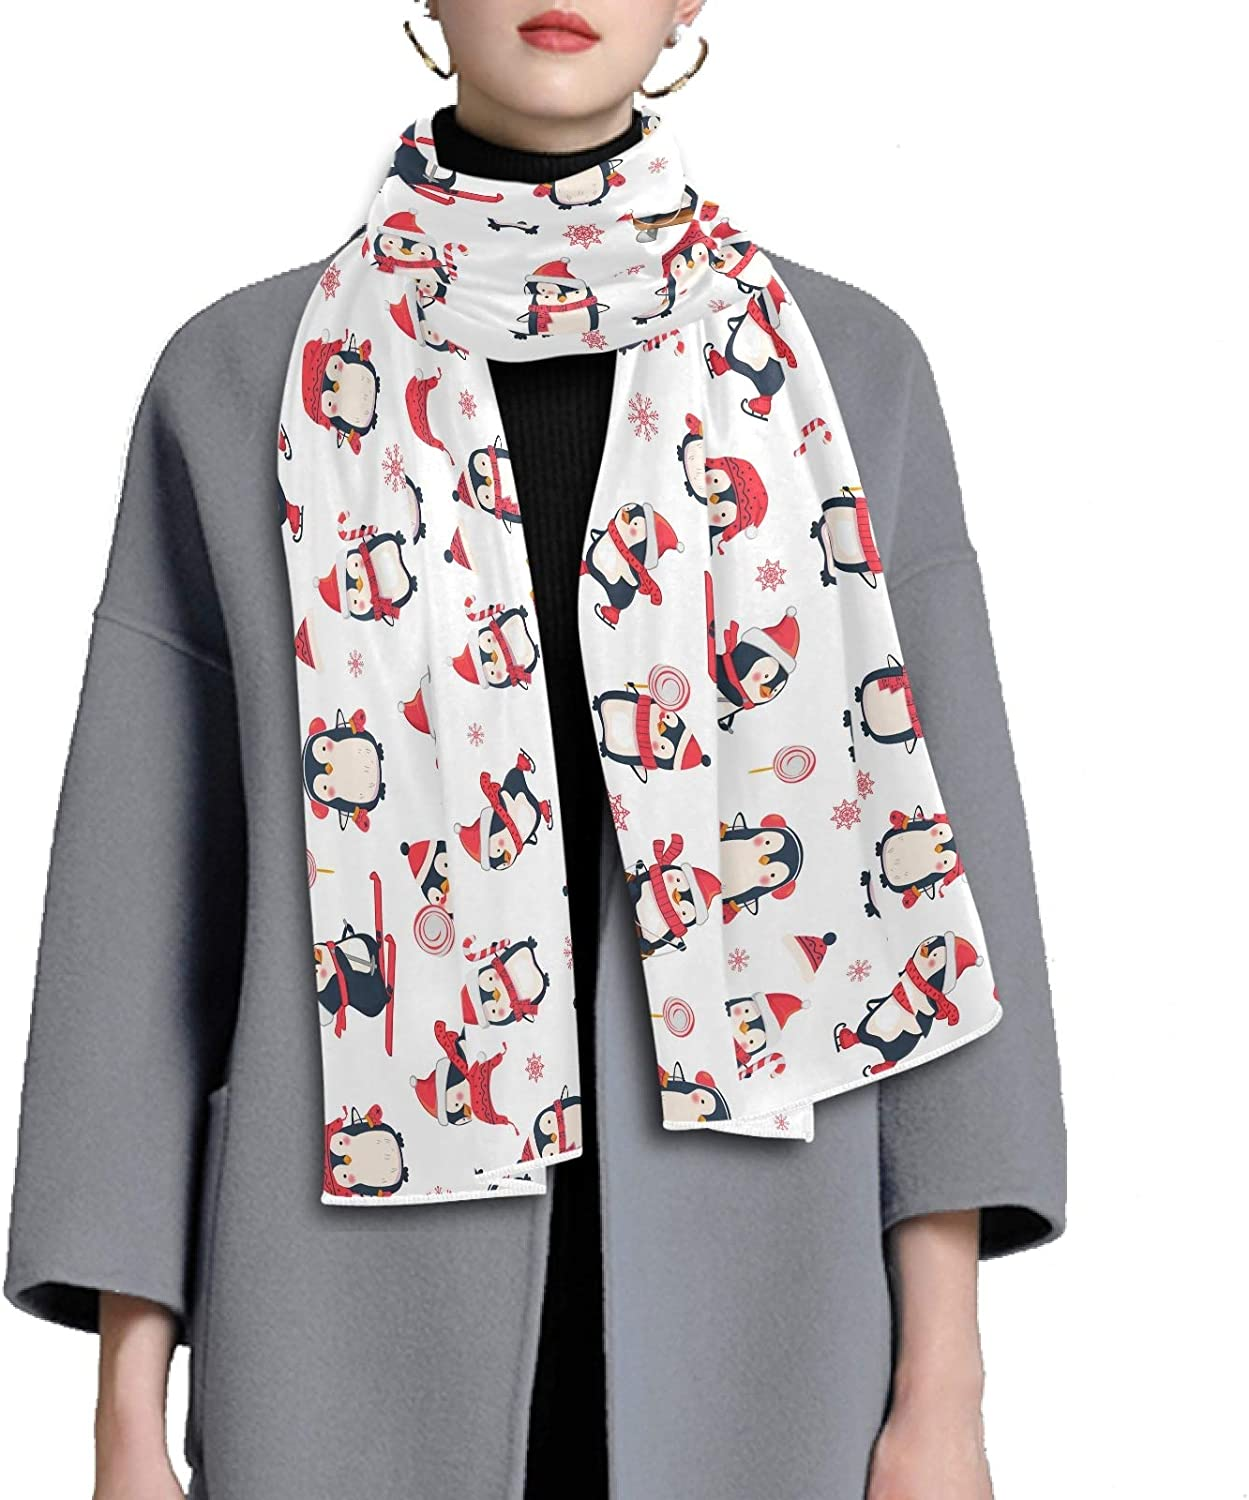 Scarf for Women and Men Cute Penguin Cartoon Christmas Blanket Shawl Scarves Wraps Warm soft Winter Oversized Scarves Lightweight